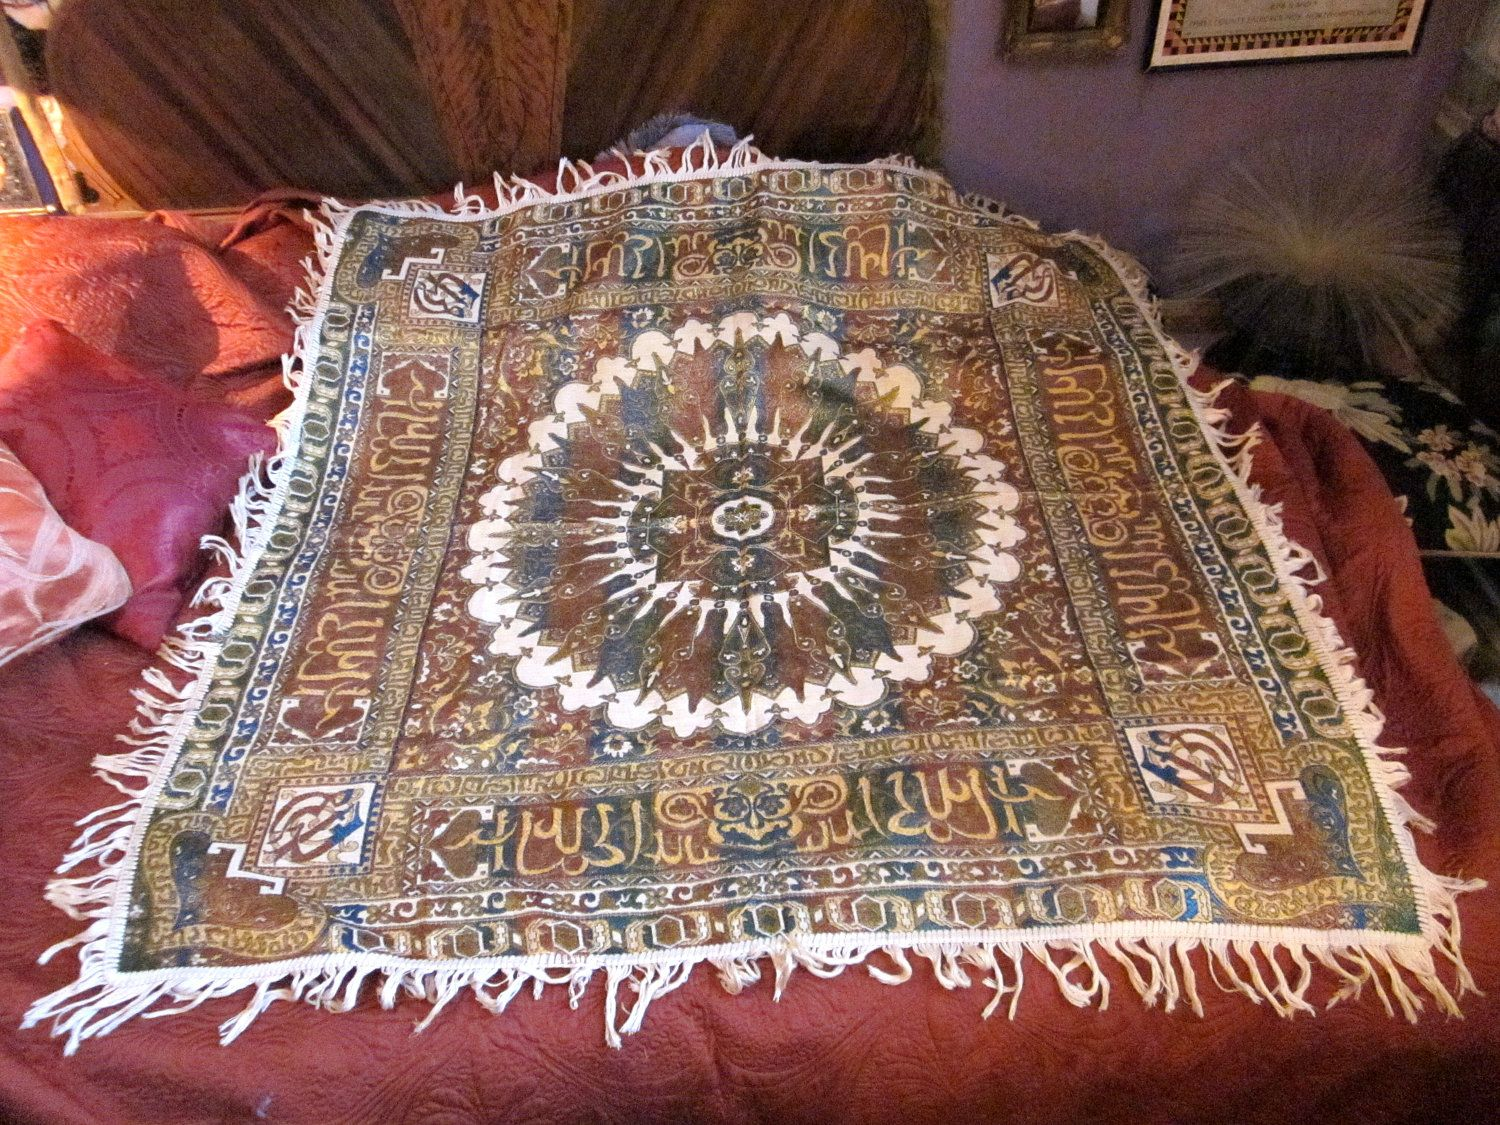 Authentic Vintage Traditional Middle Eastern Arabic Silk Bedspread Tapestry Wall Hanging With Arabic Cursive Text Bord Tapestry Wall Tapestry Vintage Bedspread